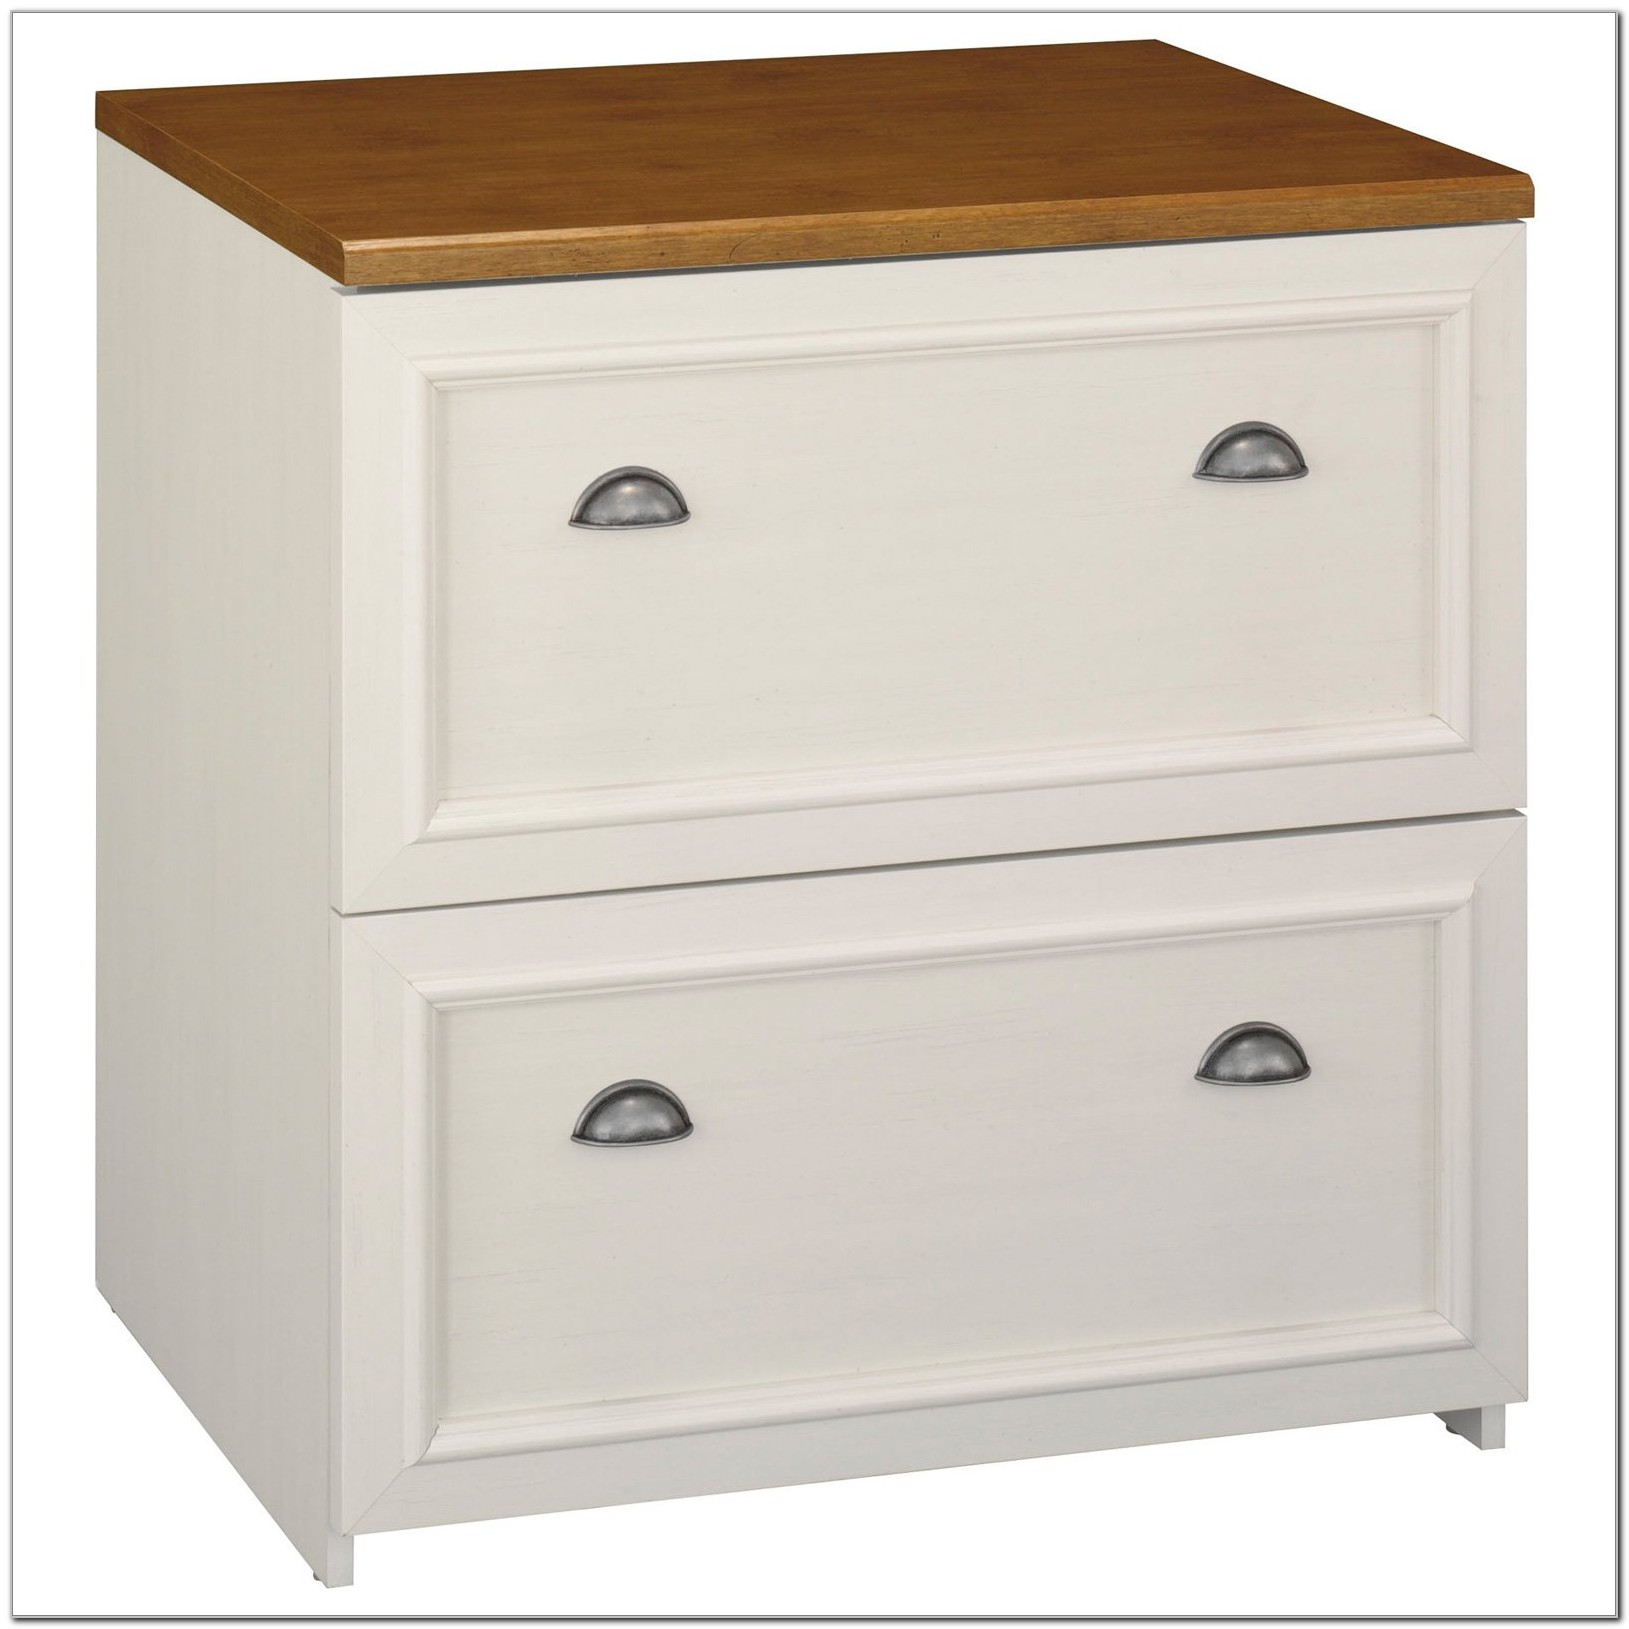 2 Drawer White Wood Lateral File Cabinet